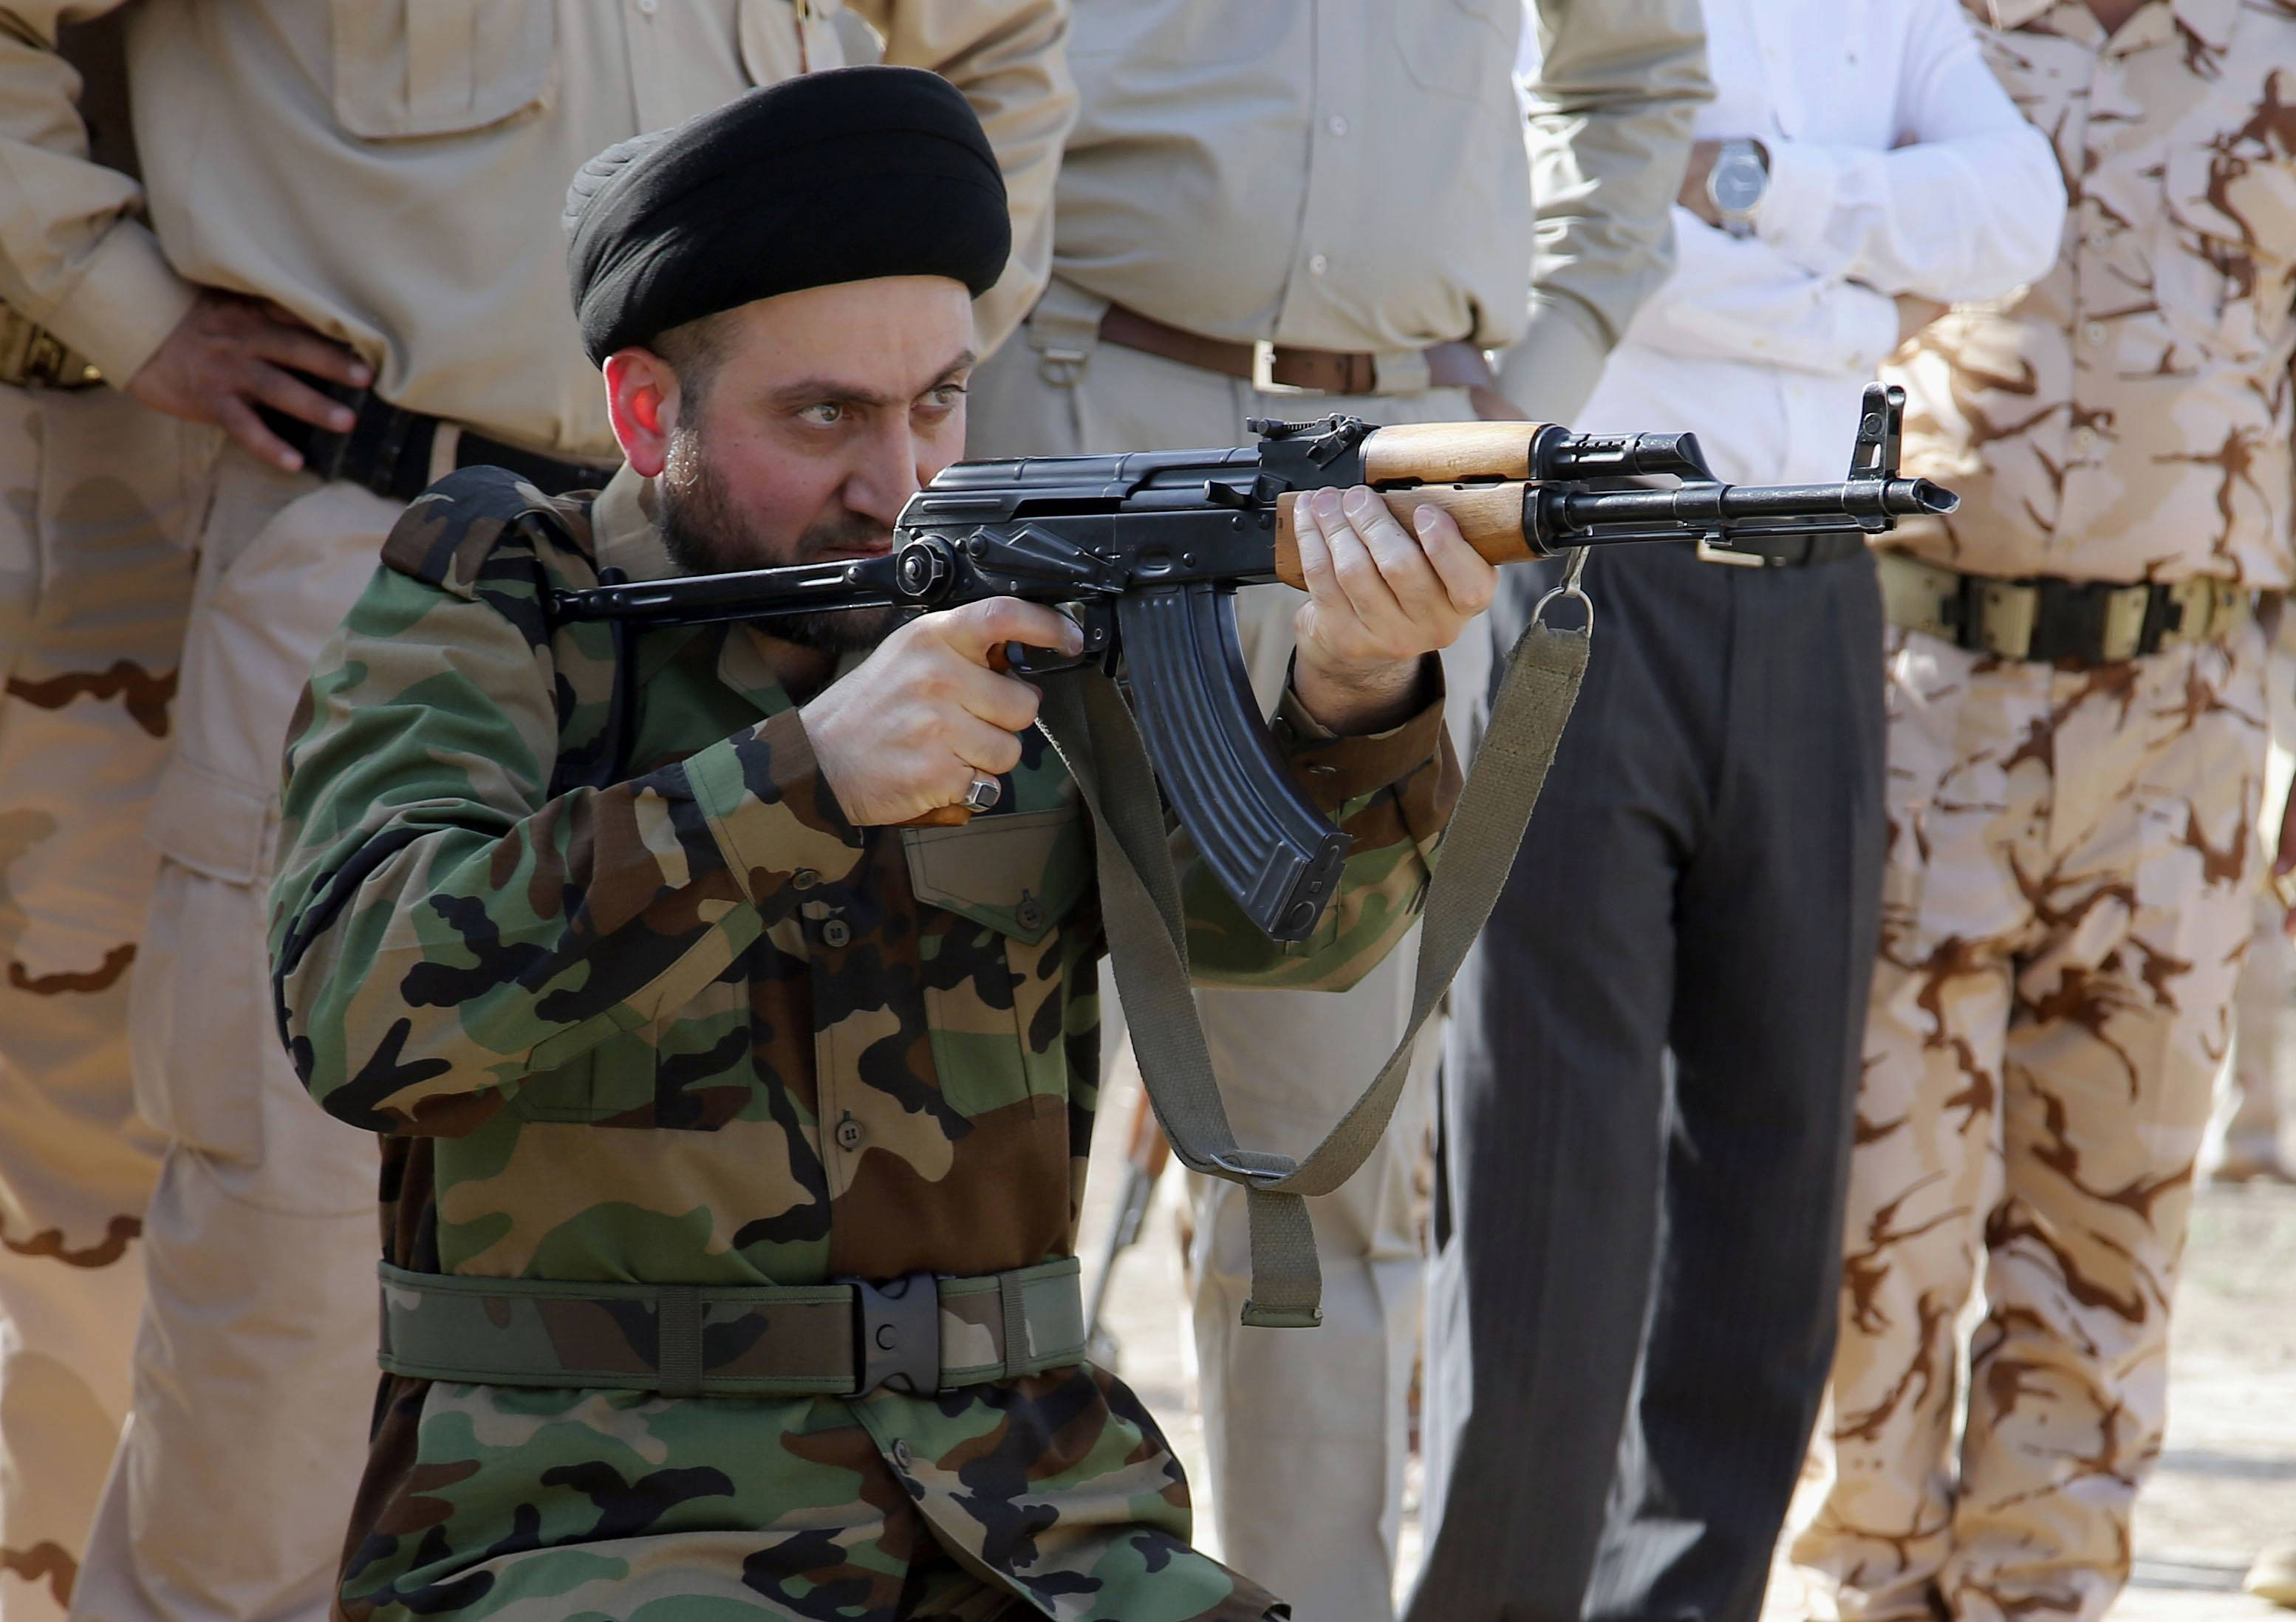 Ammar al-Hakim, leader of Iraq's largest Shiite party, the Supreme Islamic Iraqi Council, exercises a shooting drill in the main army recruiting center in Baghdad, Iraq.